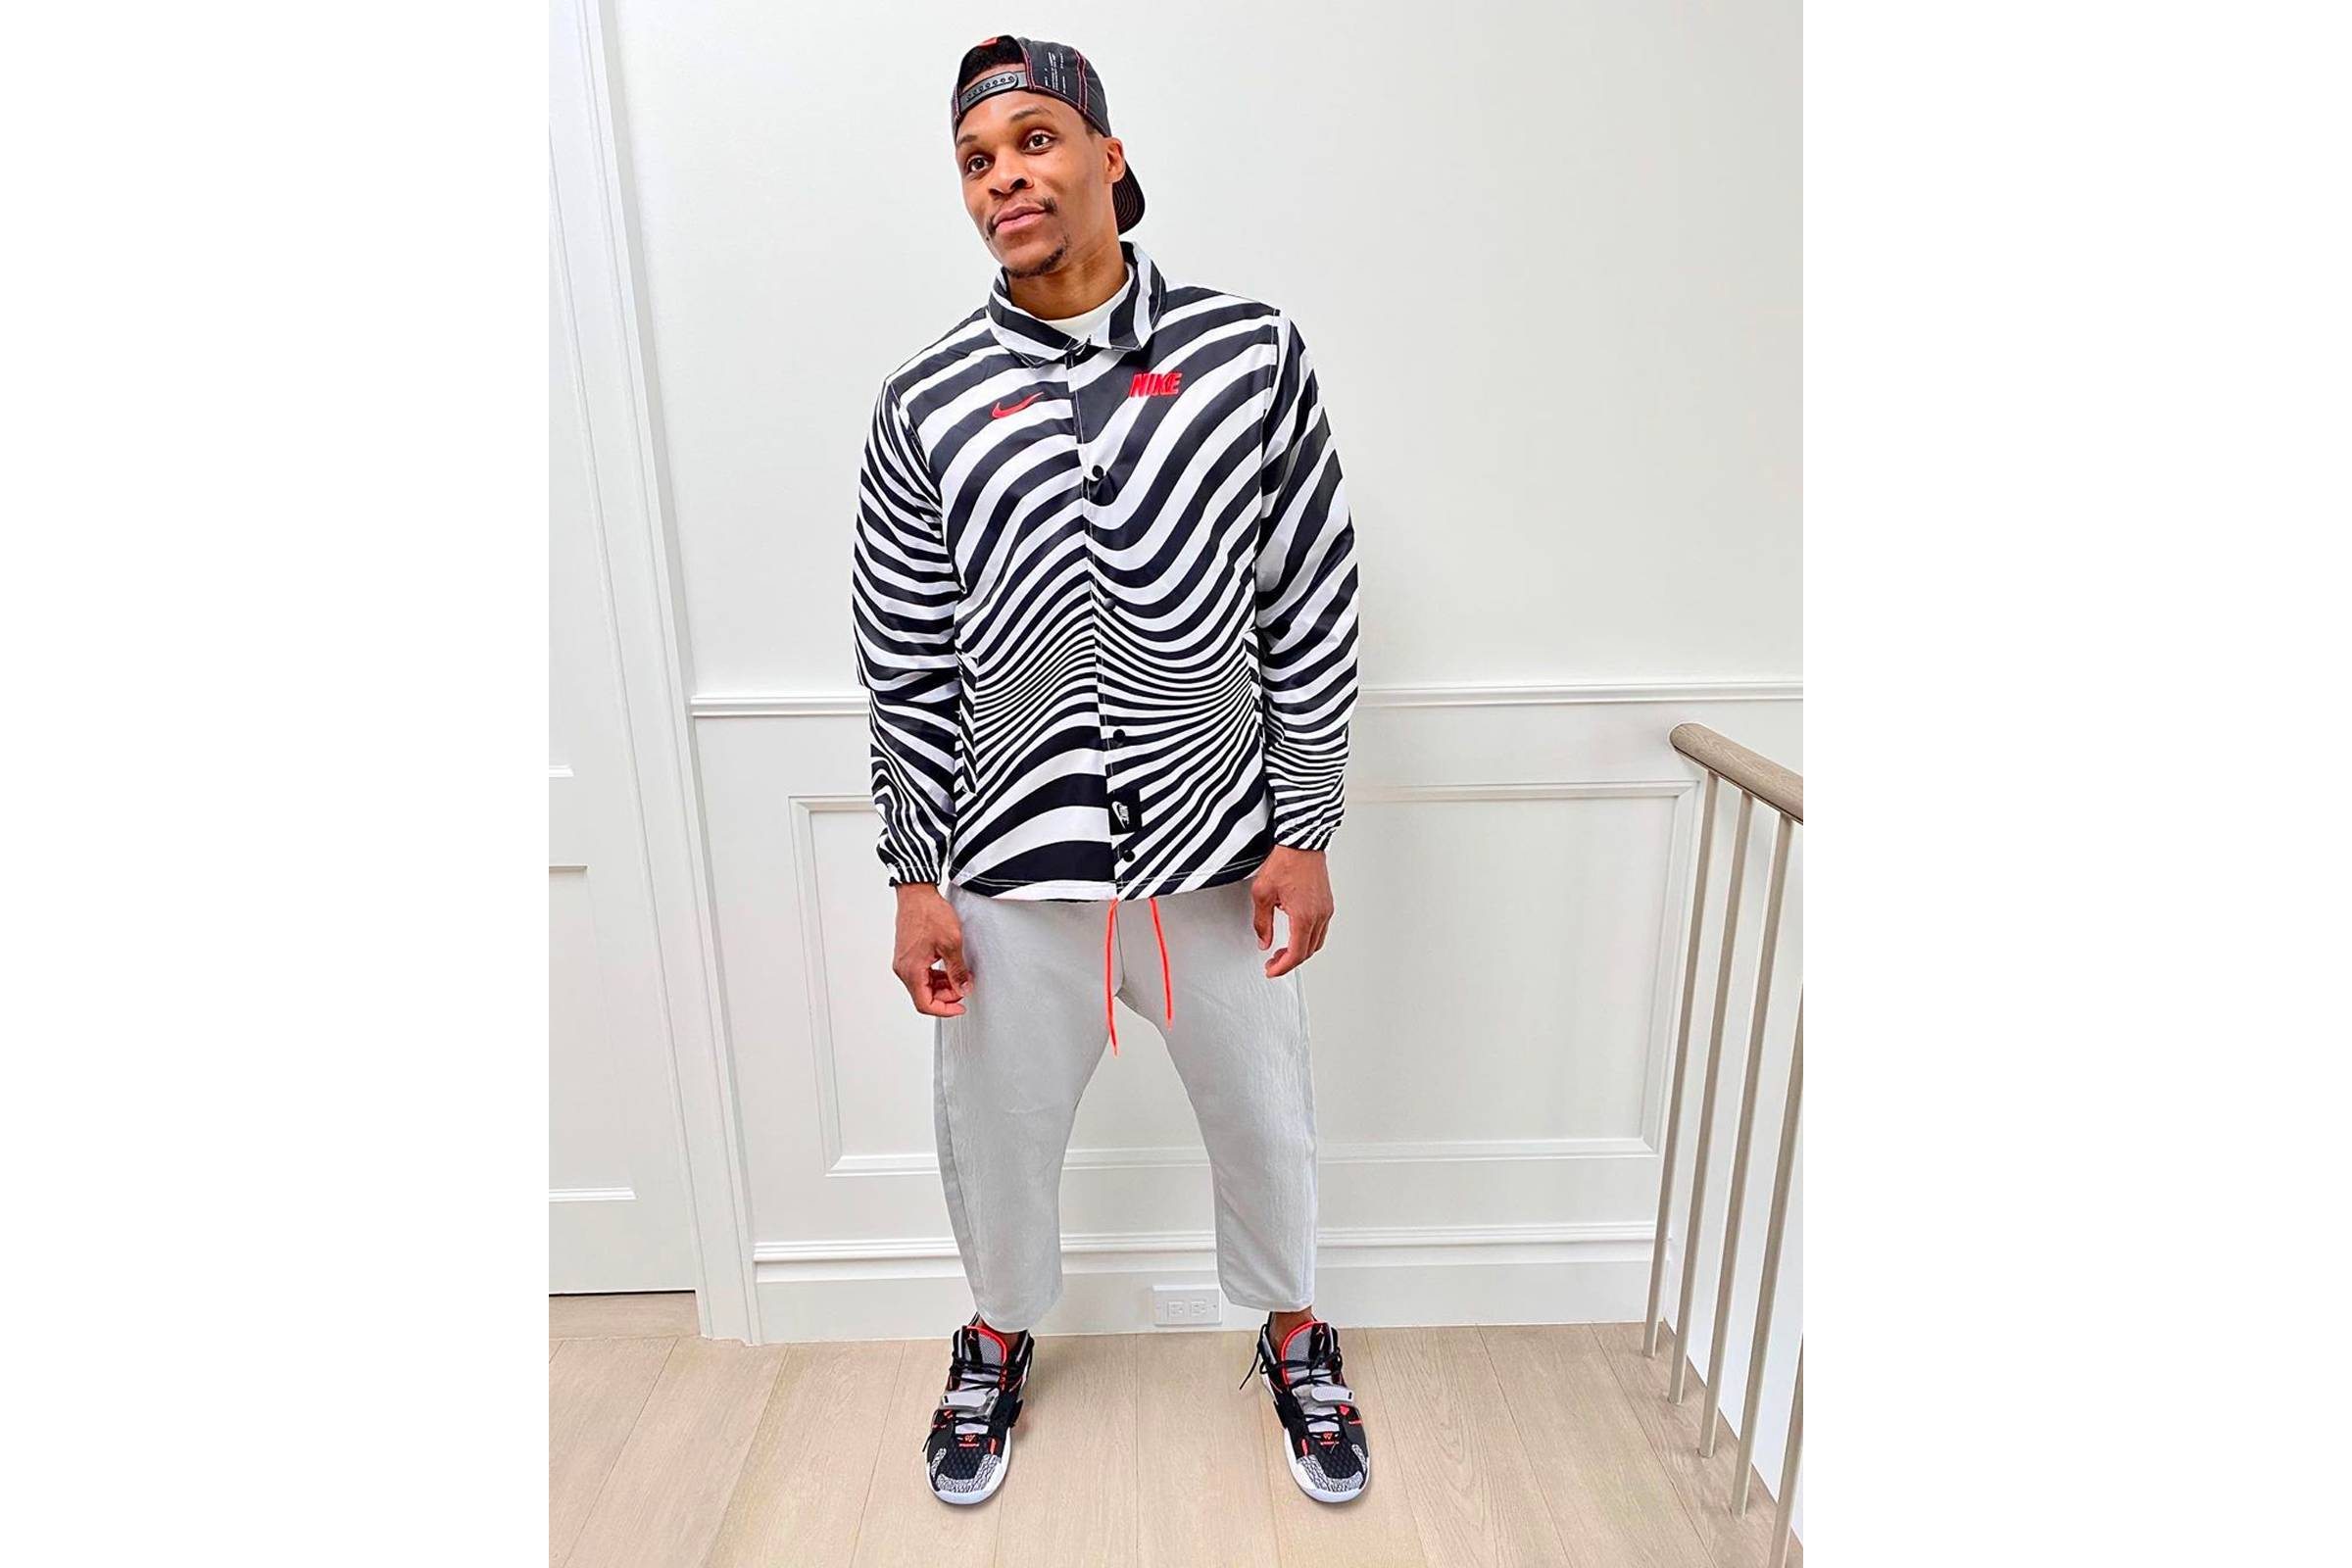 Russell Westbrook is at Home in the Hallway